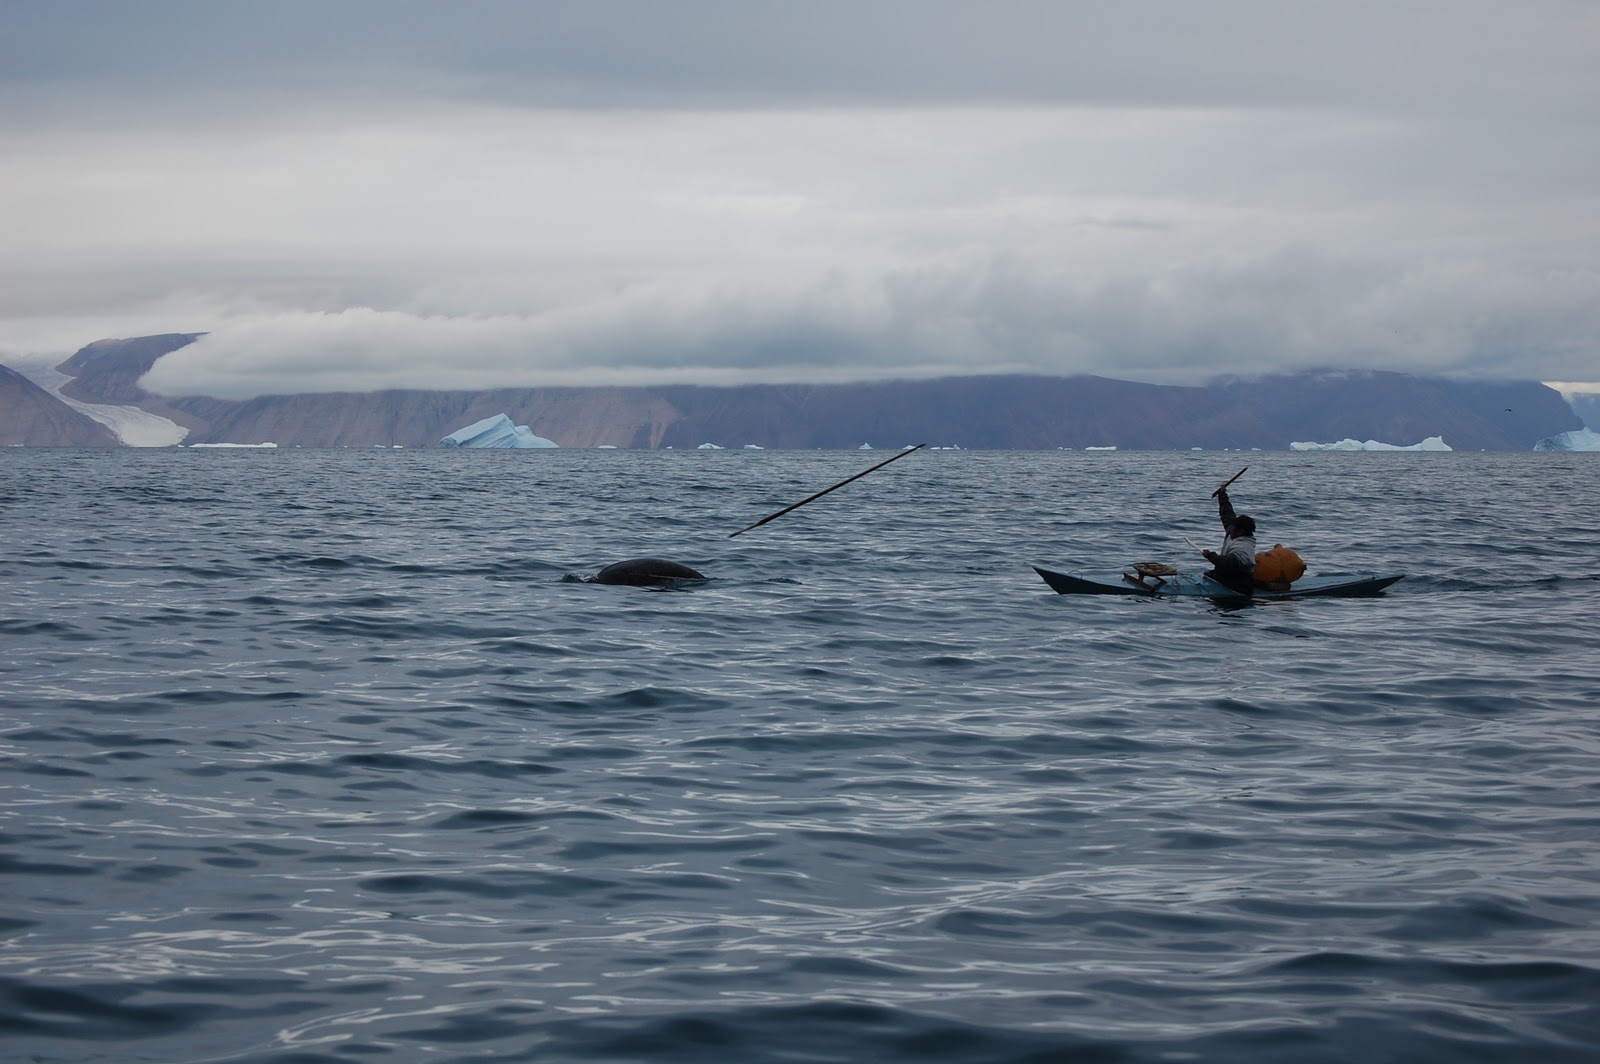 thoughts and feelings about narwhal hunting This is because when we assess ourselves for irrationality, we look inward, searching through our thoughts and feelings for bias but biases operate unconsciously, so while we have little trouble pointing out the biases in others, it is exceedingly difficult for us to take note of our own.